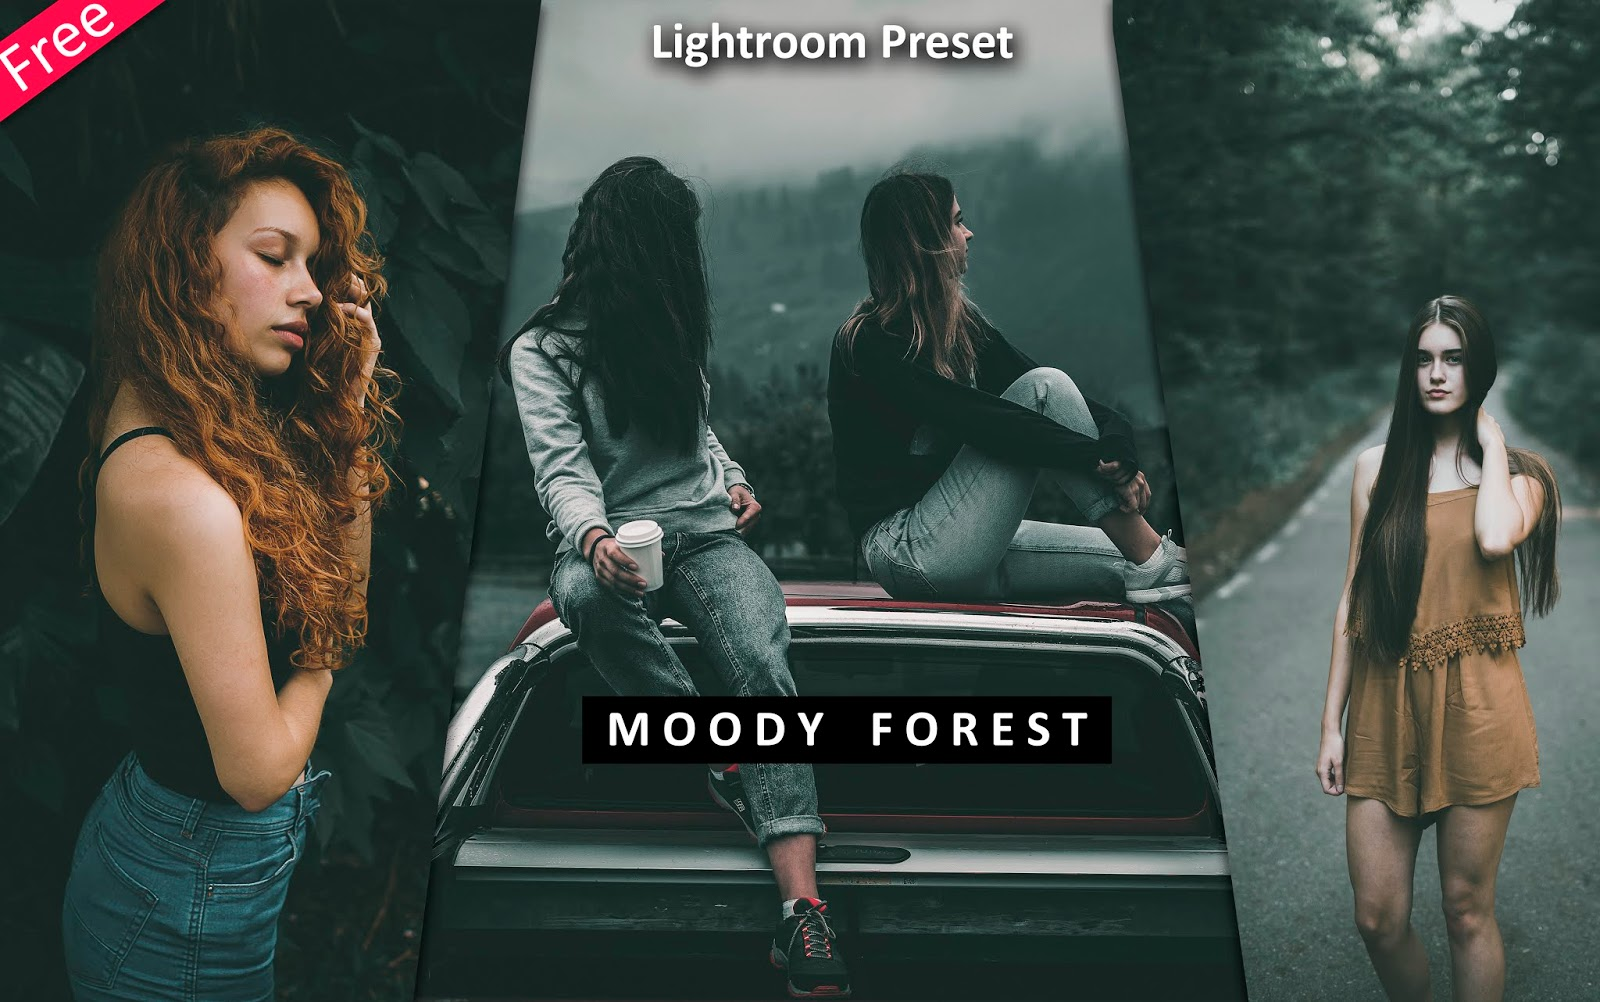 Download Moody Forest Lightroom Preset for Free | How to Edit Your Photos Like Moody Forest Effect in Lightroom